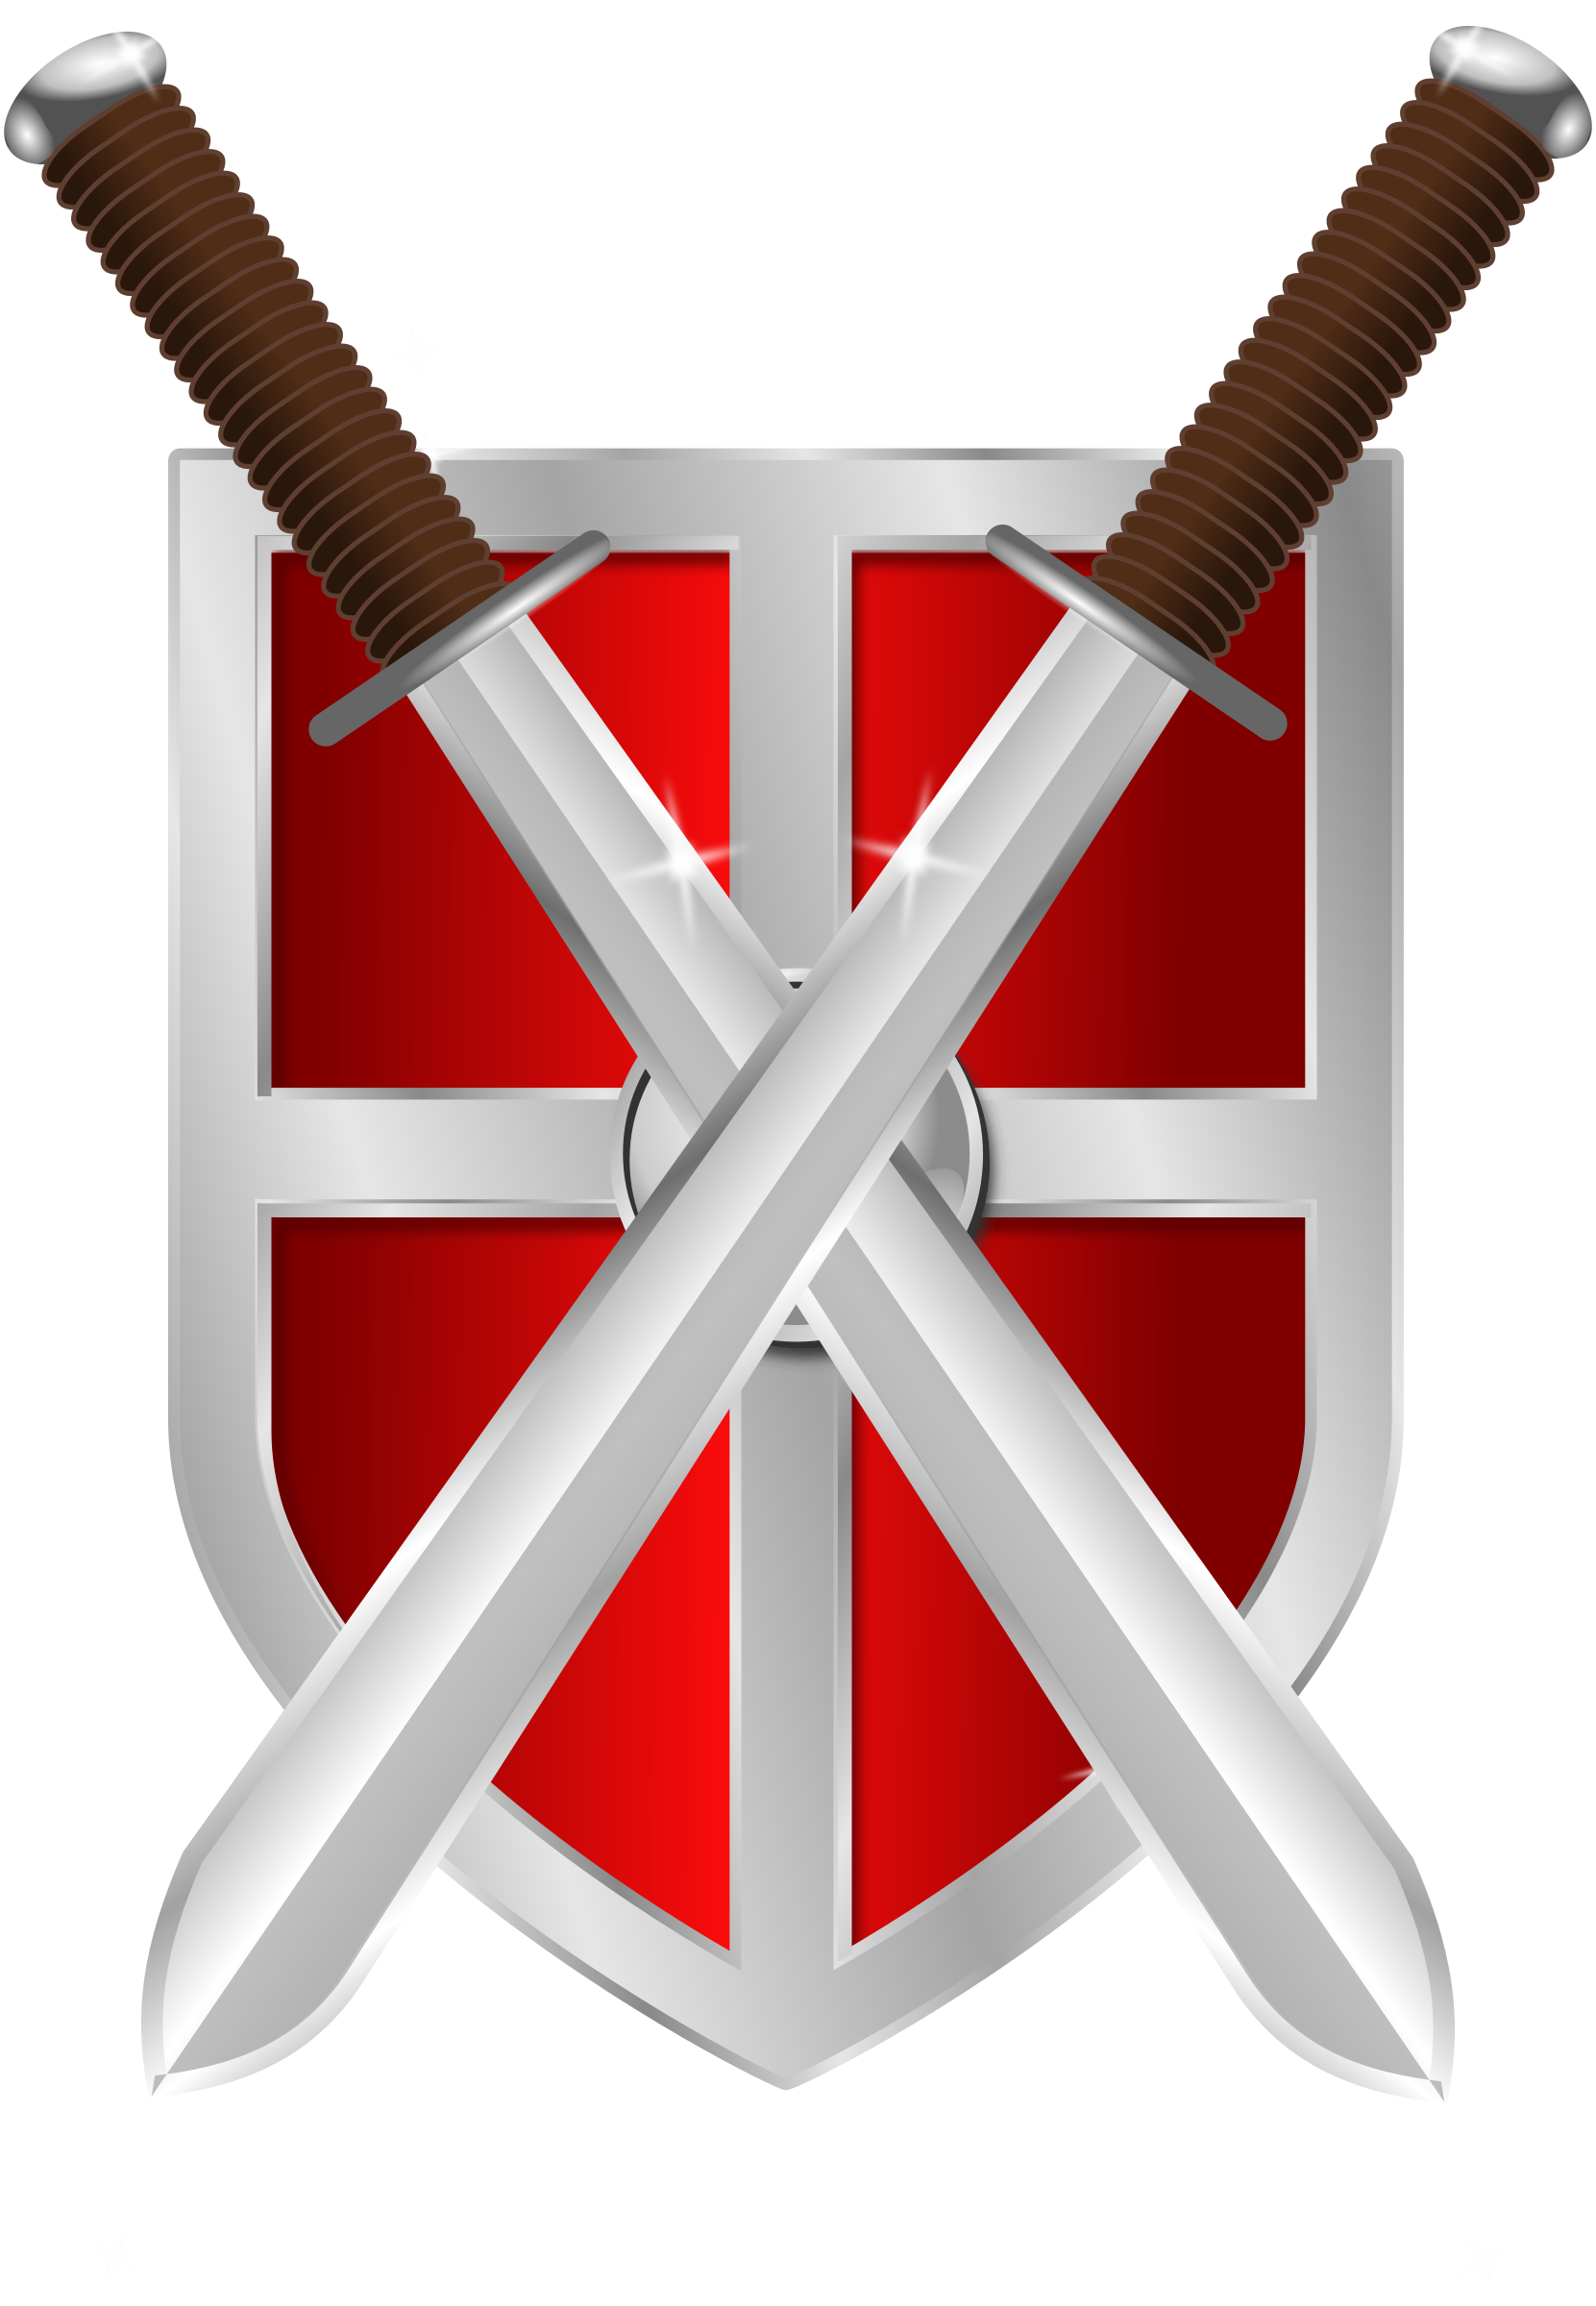 Swords and shield icons. Fighting clipart sword